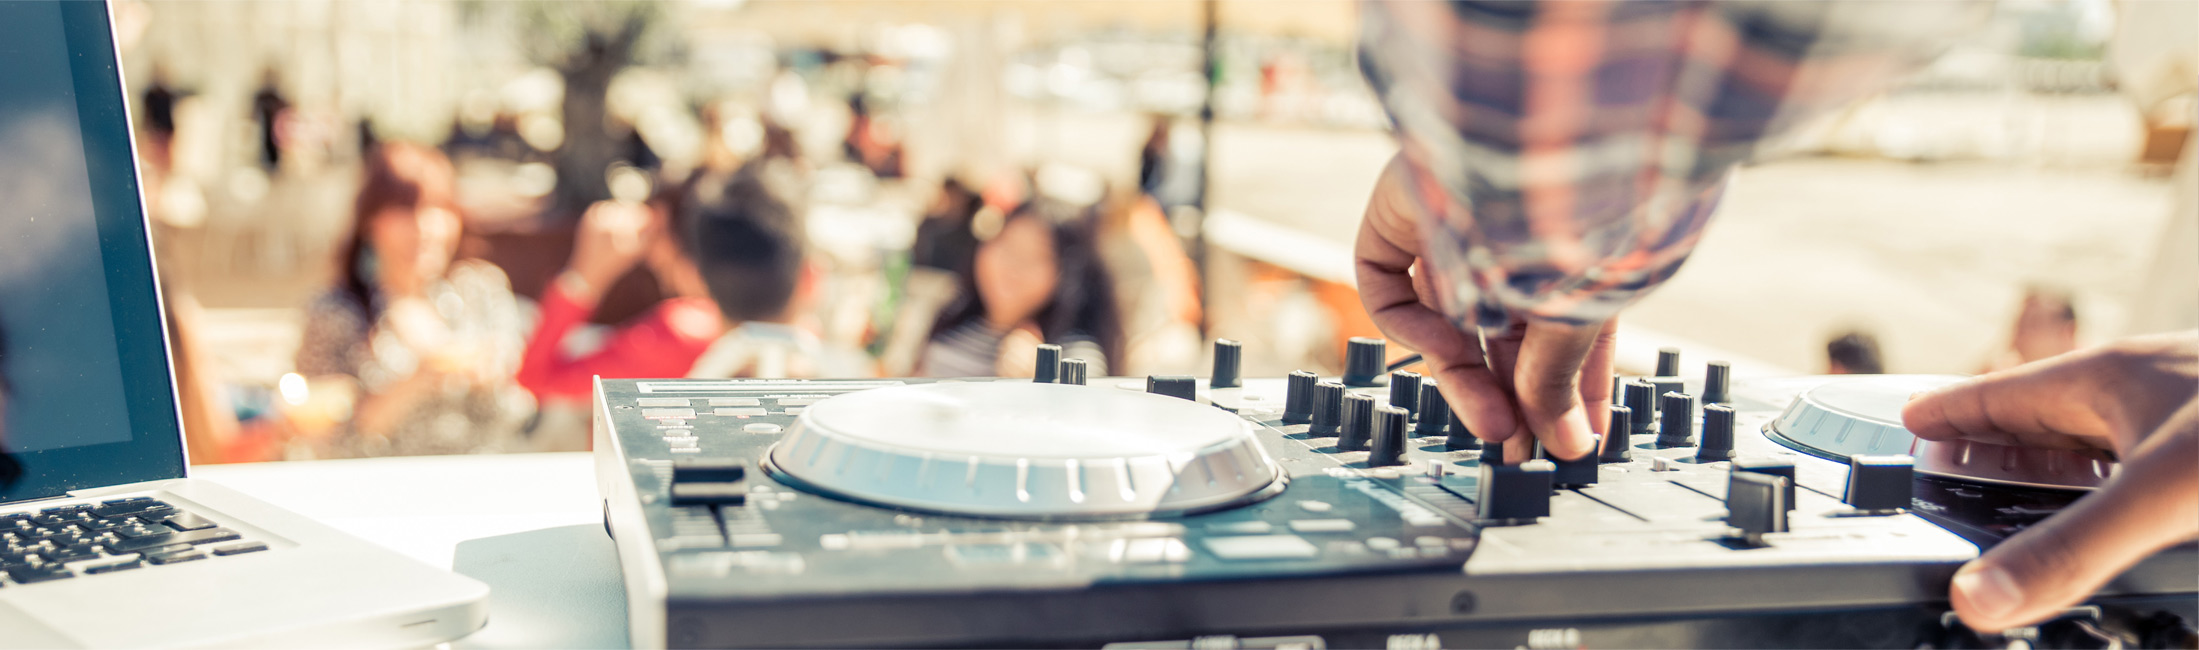 Personal DJ Service Contract DJ Christopher Co – Personal Service Contract